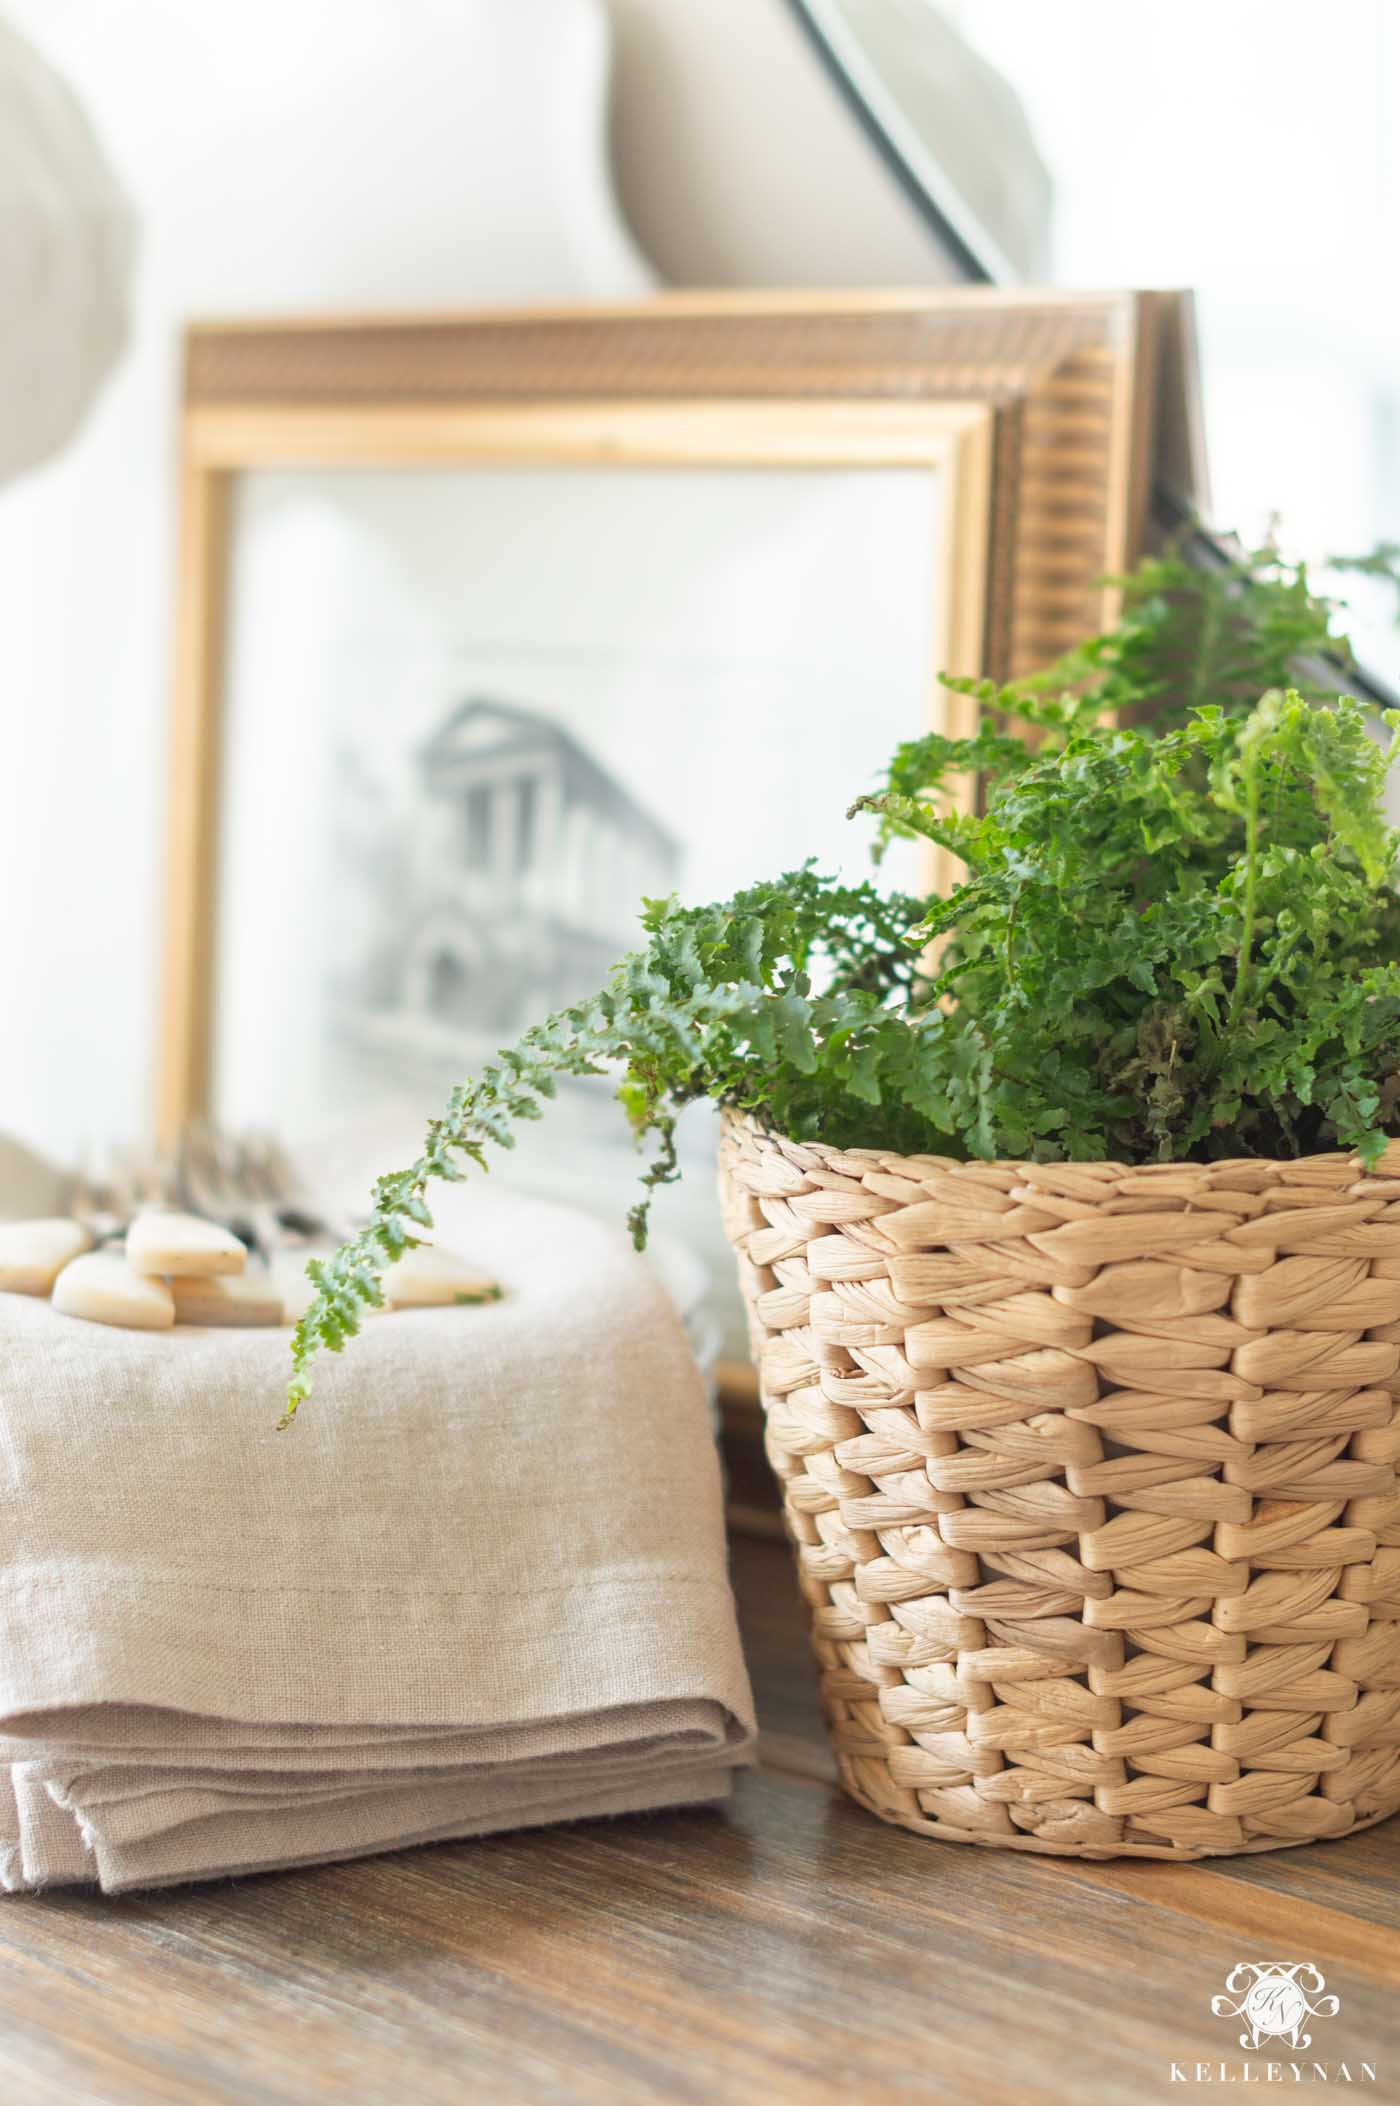 Adding Easy Live Plants to Your Spring Decor